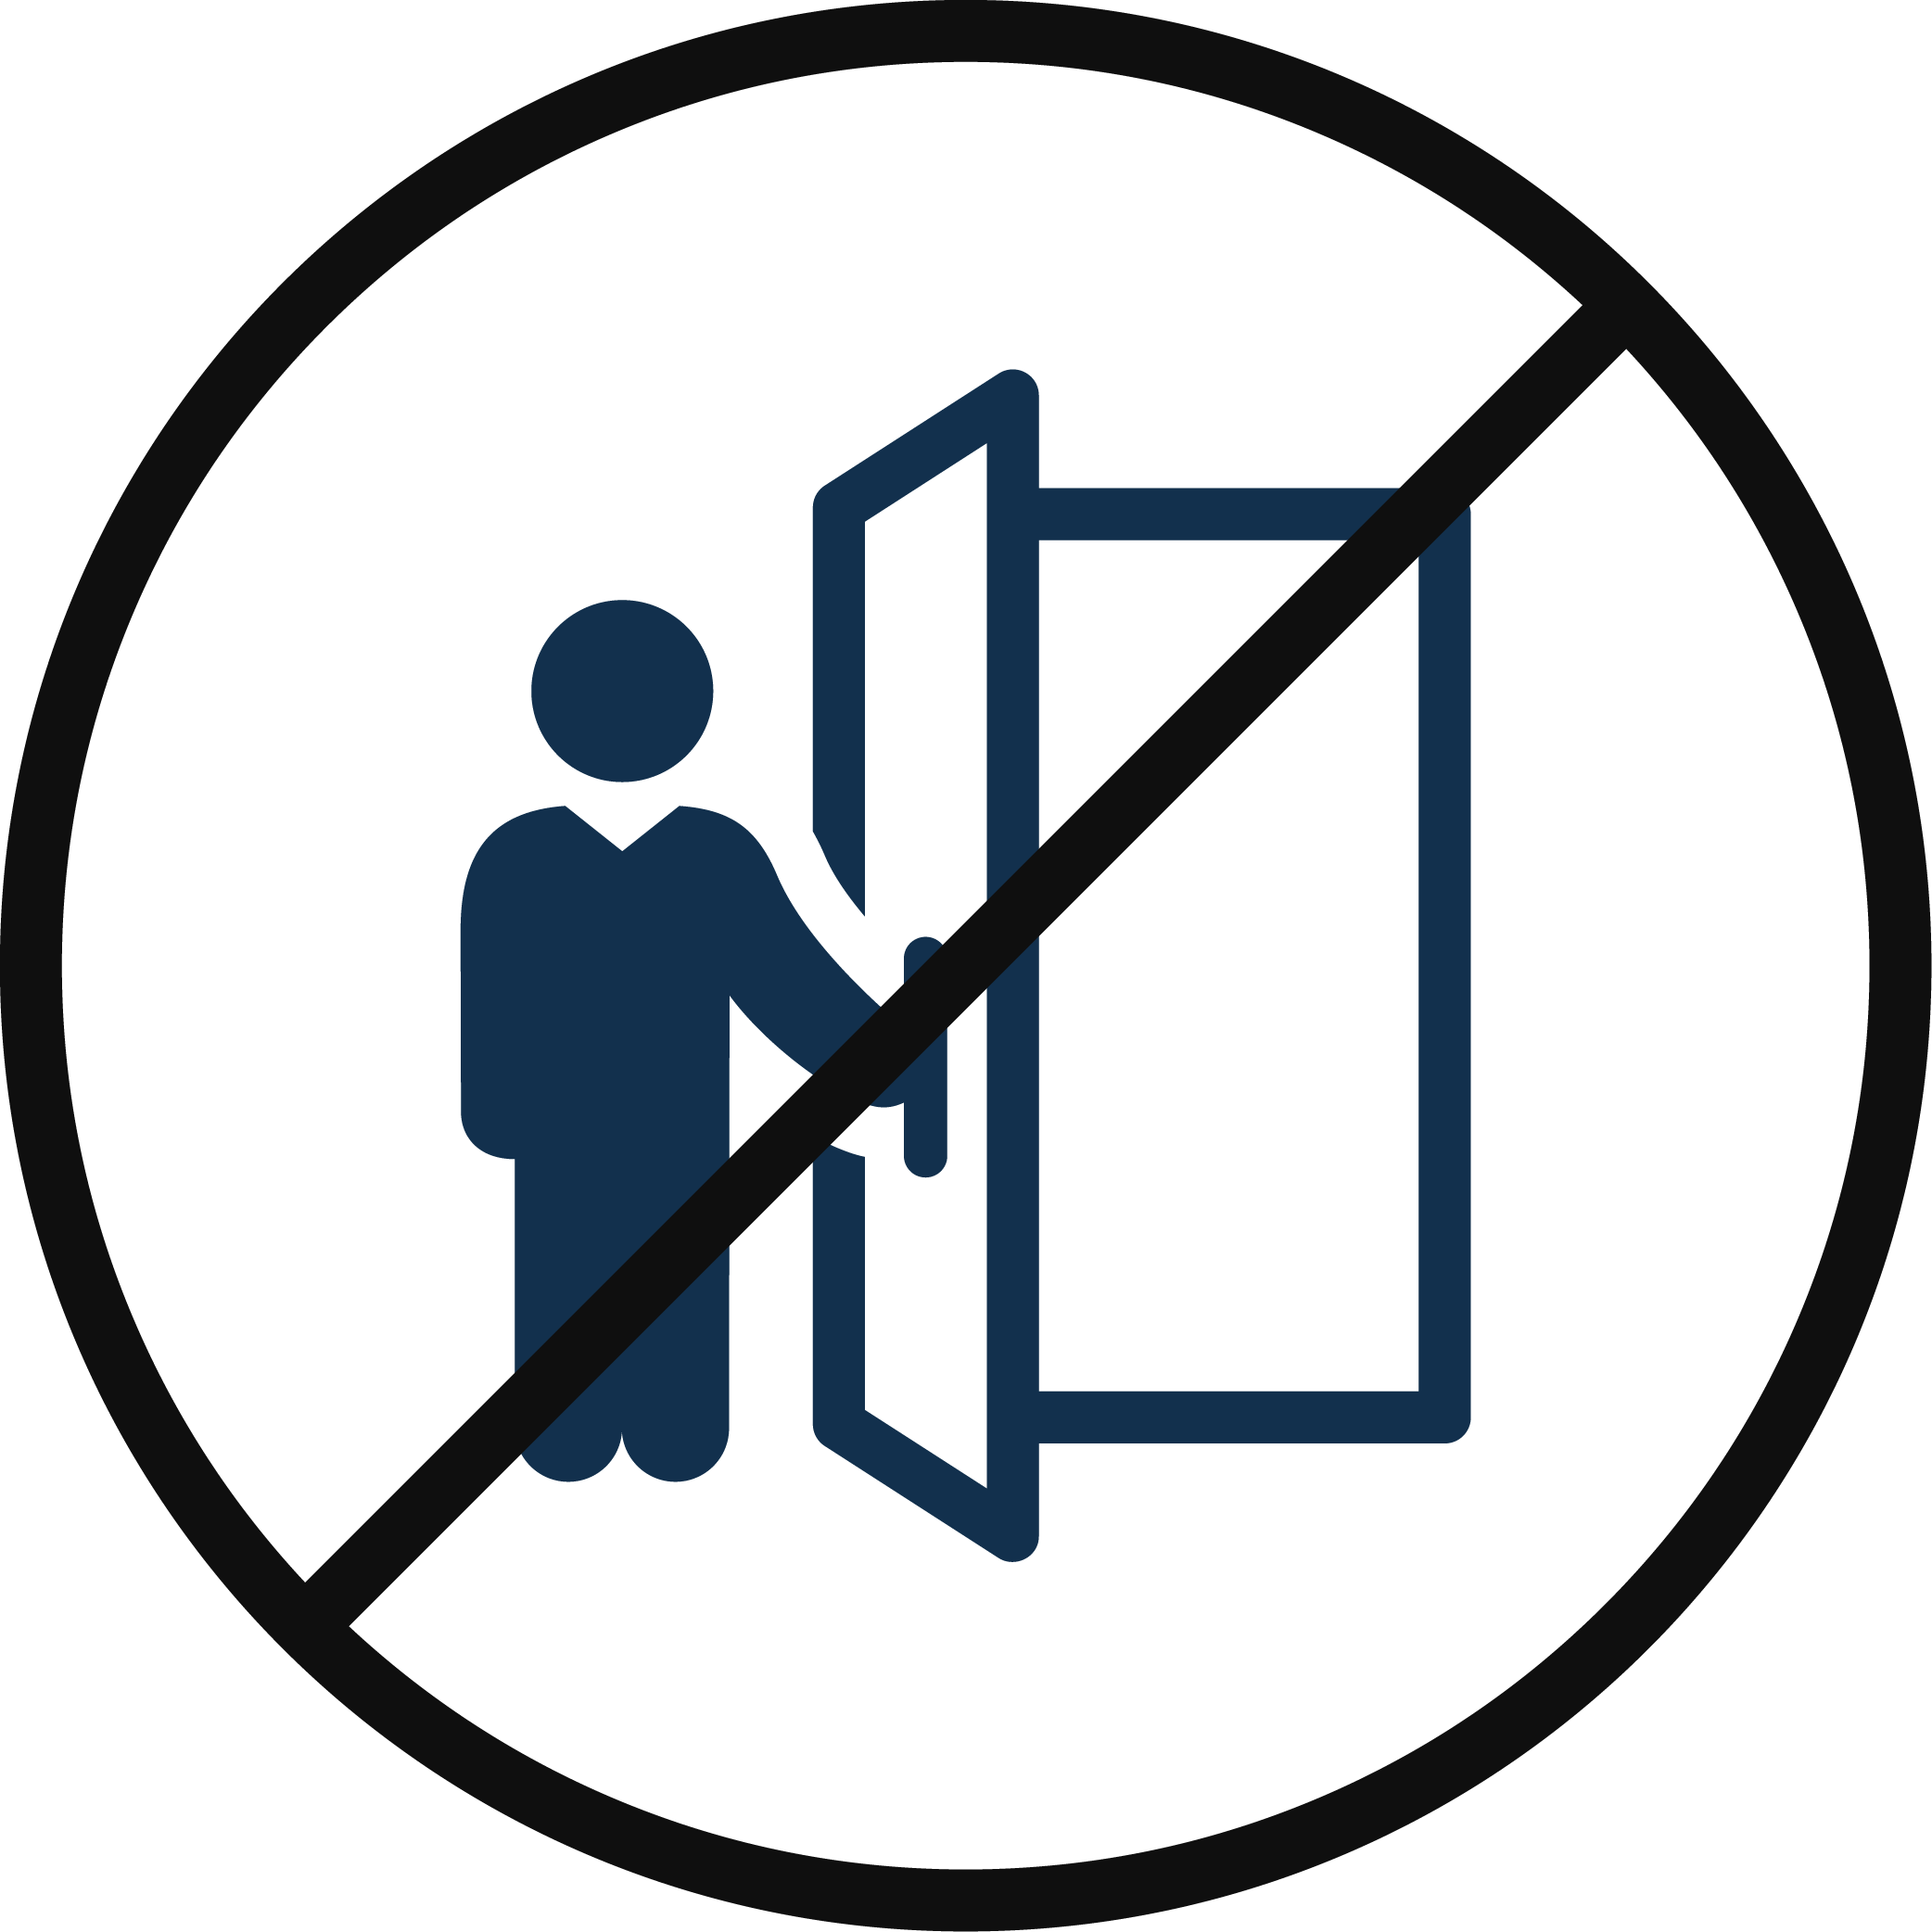 Icon depicting a person touching a doorknob with a cross through it.